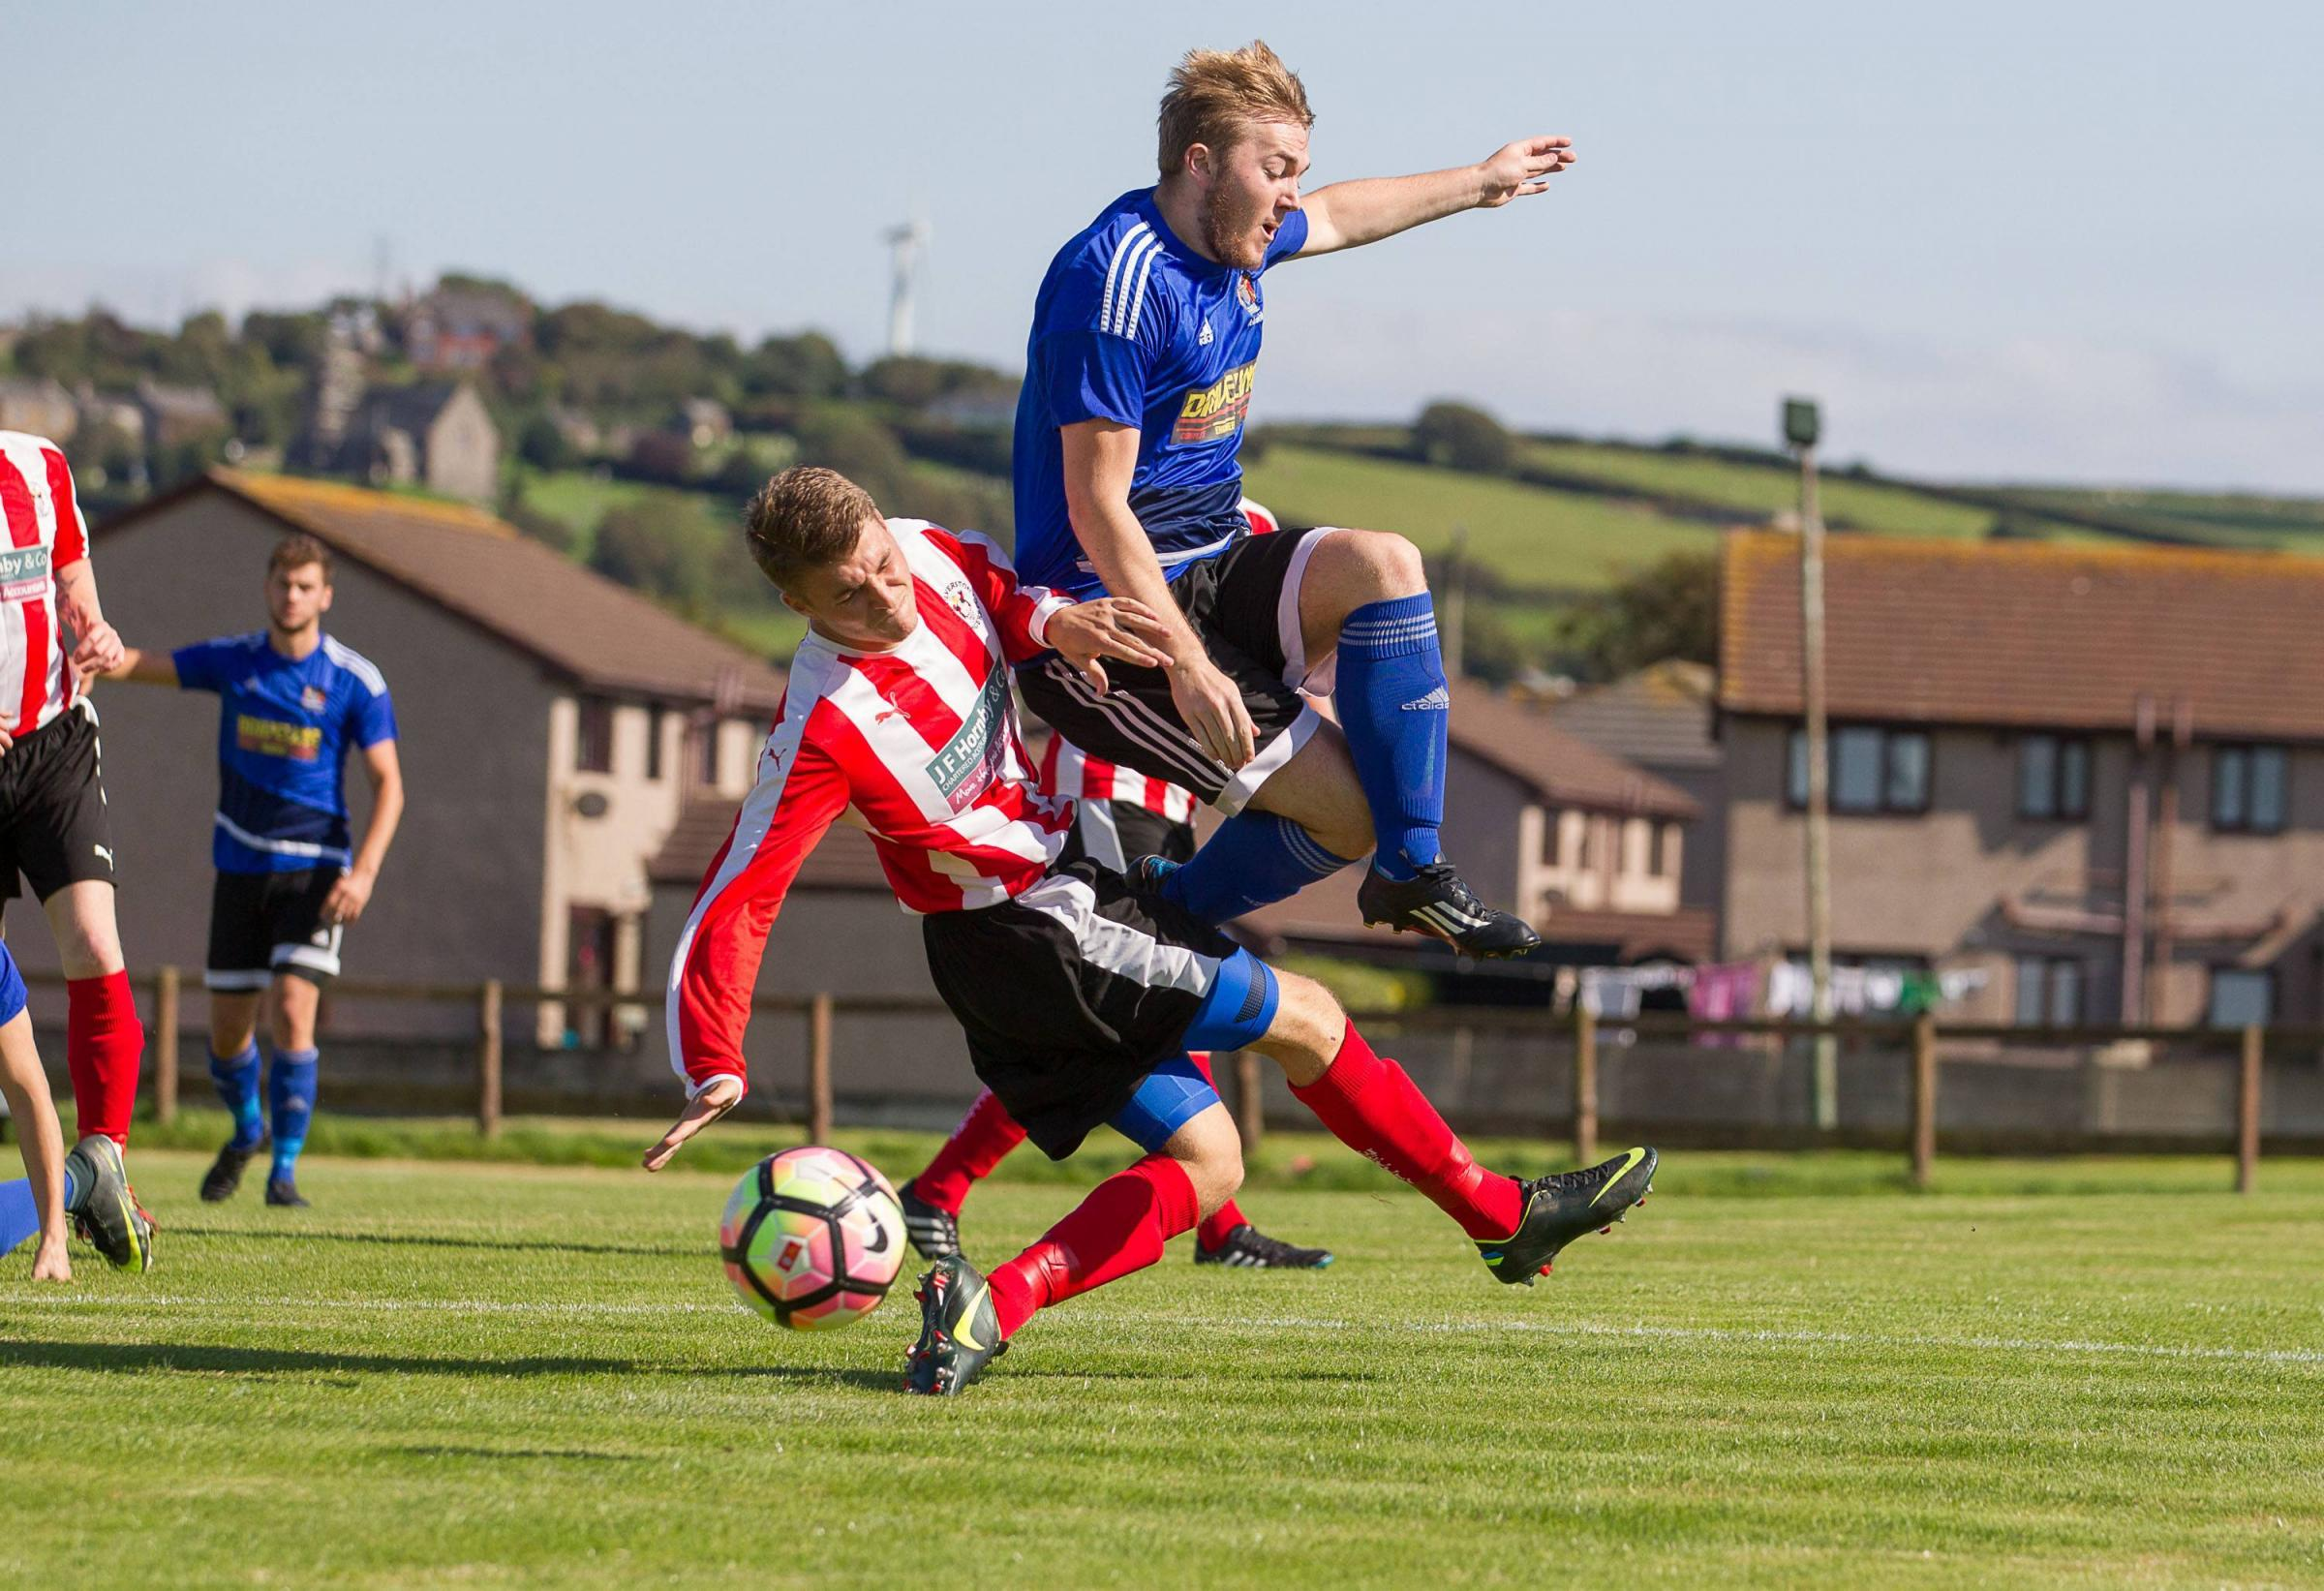 MATCH-WINNER: Michael Thomas slotted home the winning penalty for Askam United Picture: Chris West